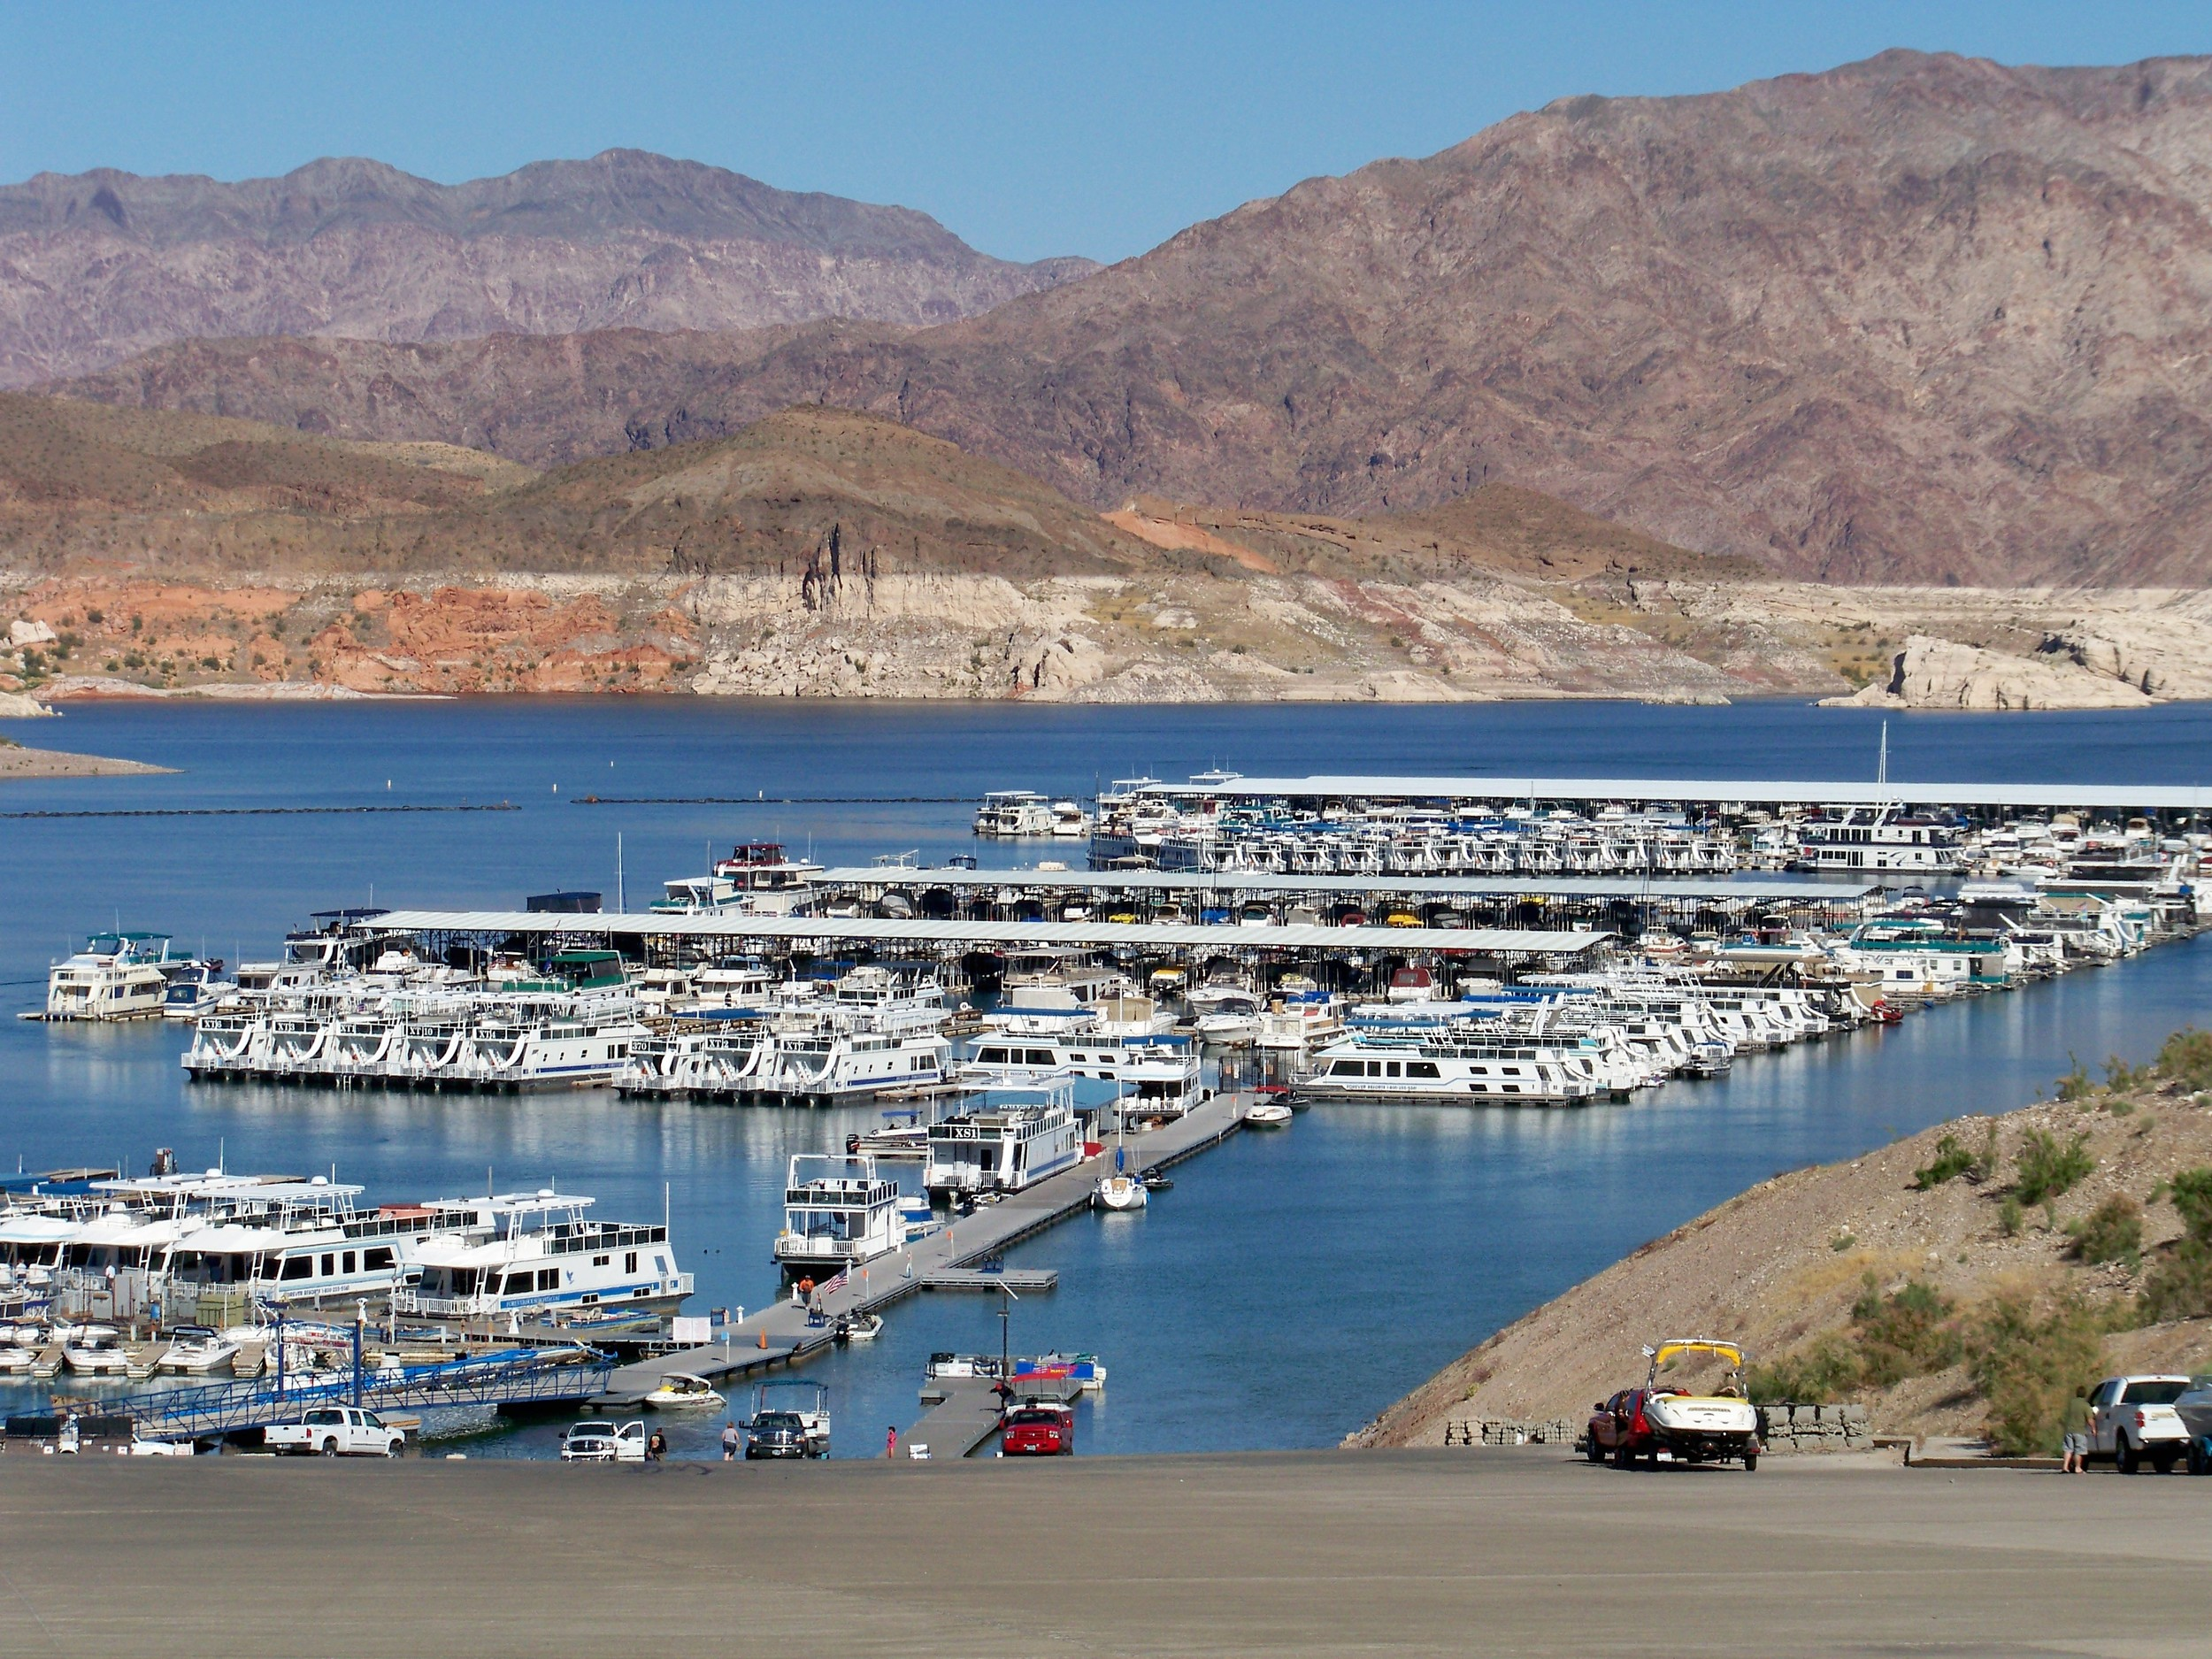 The event launches from Callville Bay NV. That is a long walk up the launch ramp to get the truck and trailer. Ah, the life of a Co-Angler, so blessed!